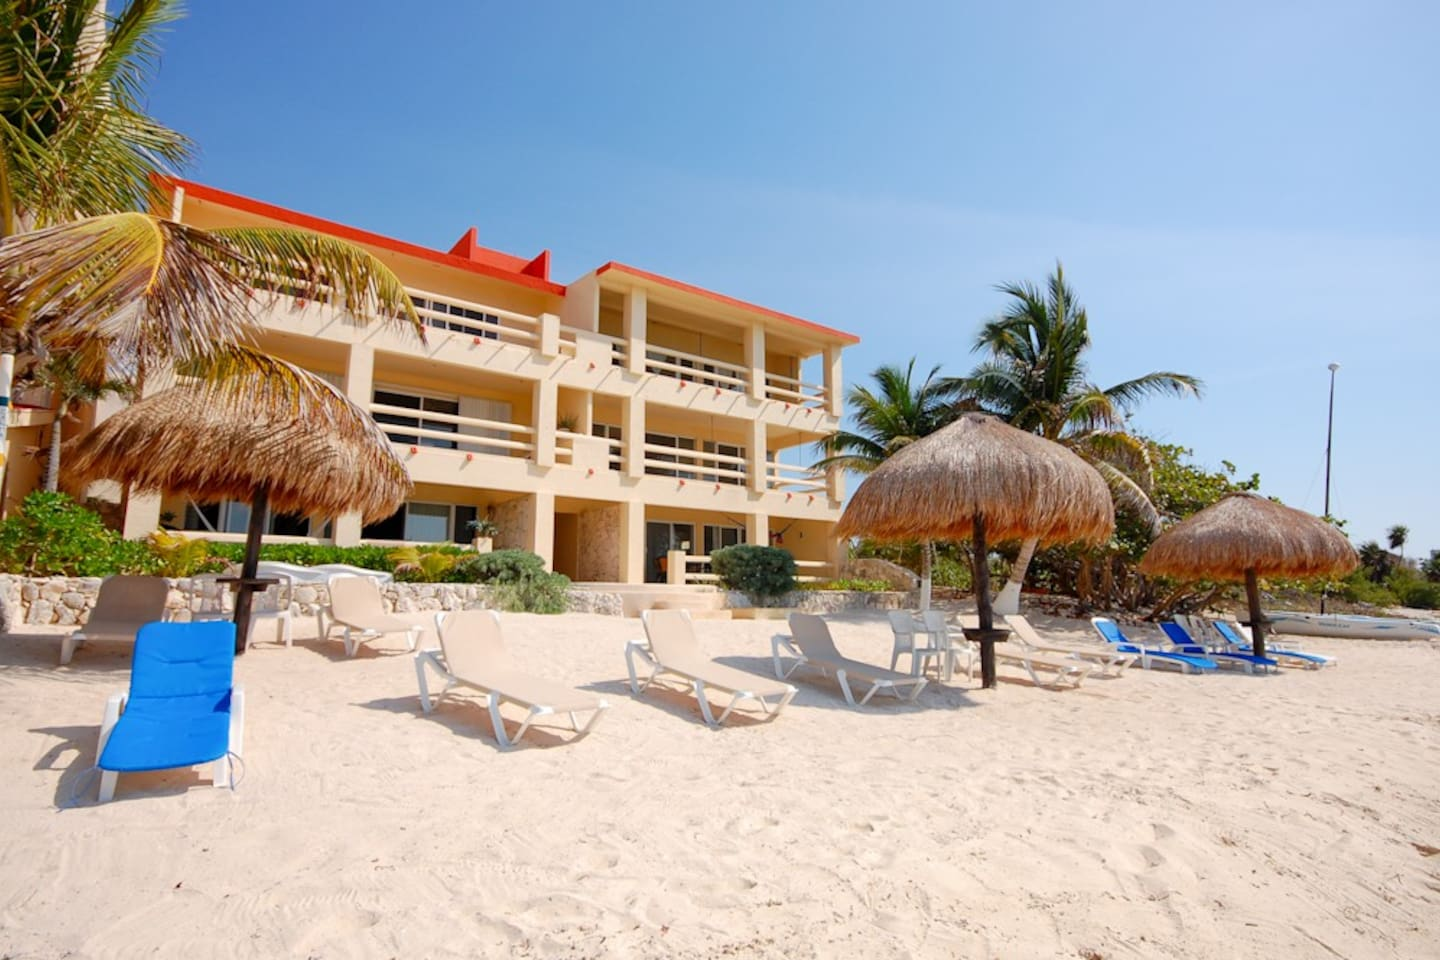 La Mirage Condominiums at Half Moon Bay beach in Akumal.  Loungers and shade palapas are for guest use.